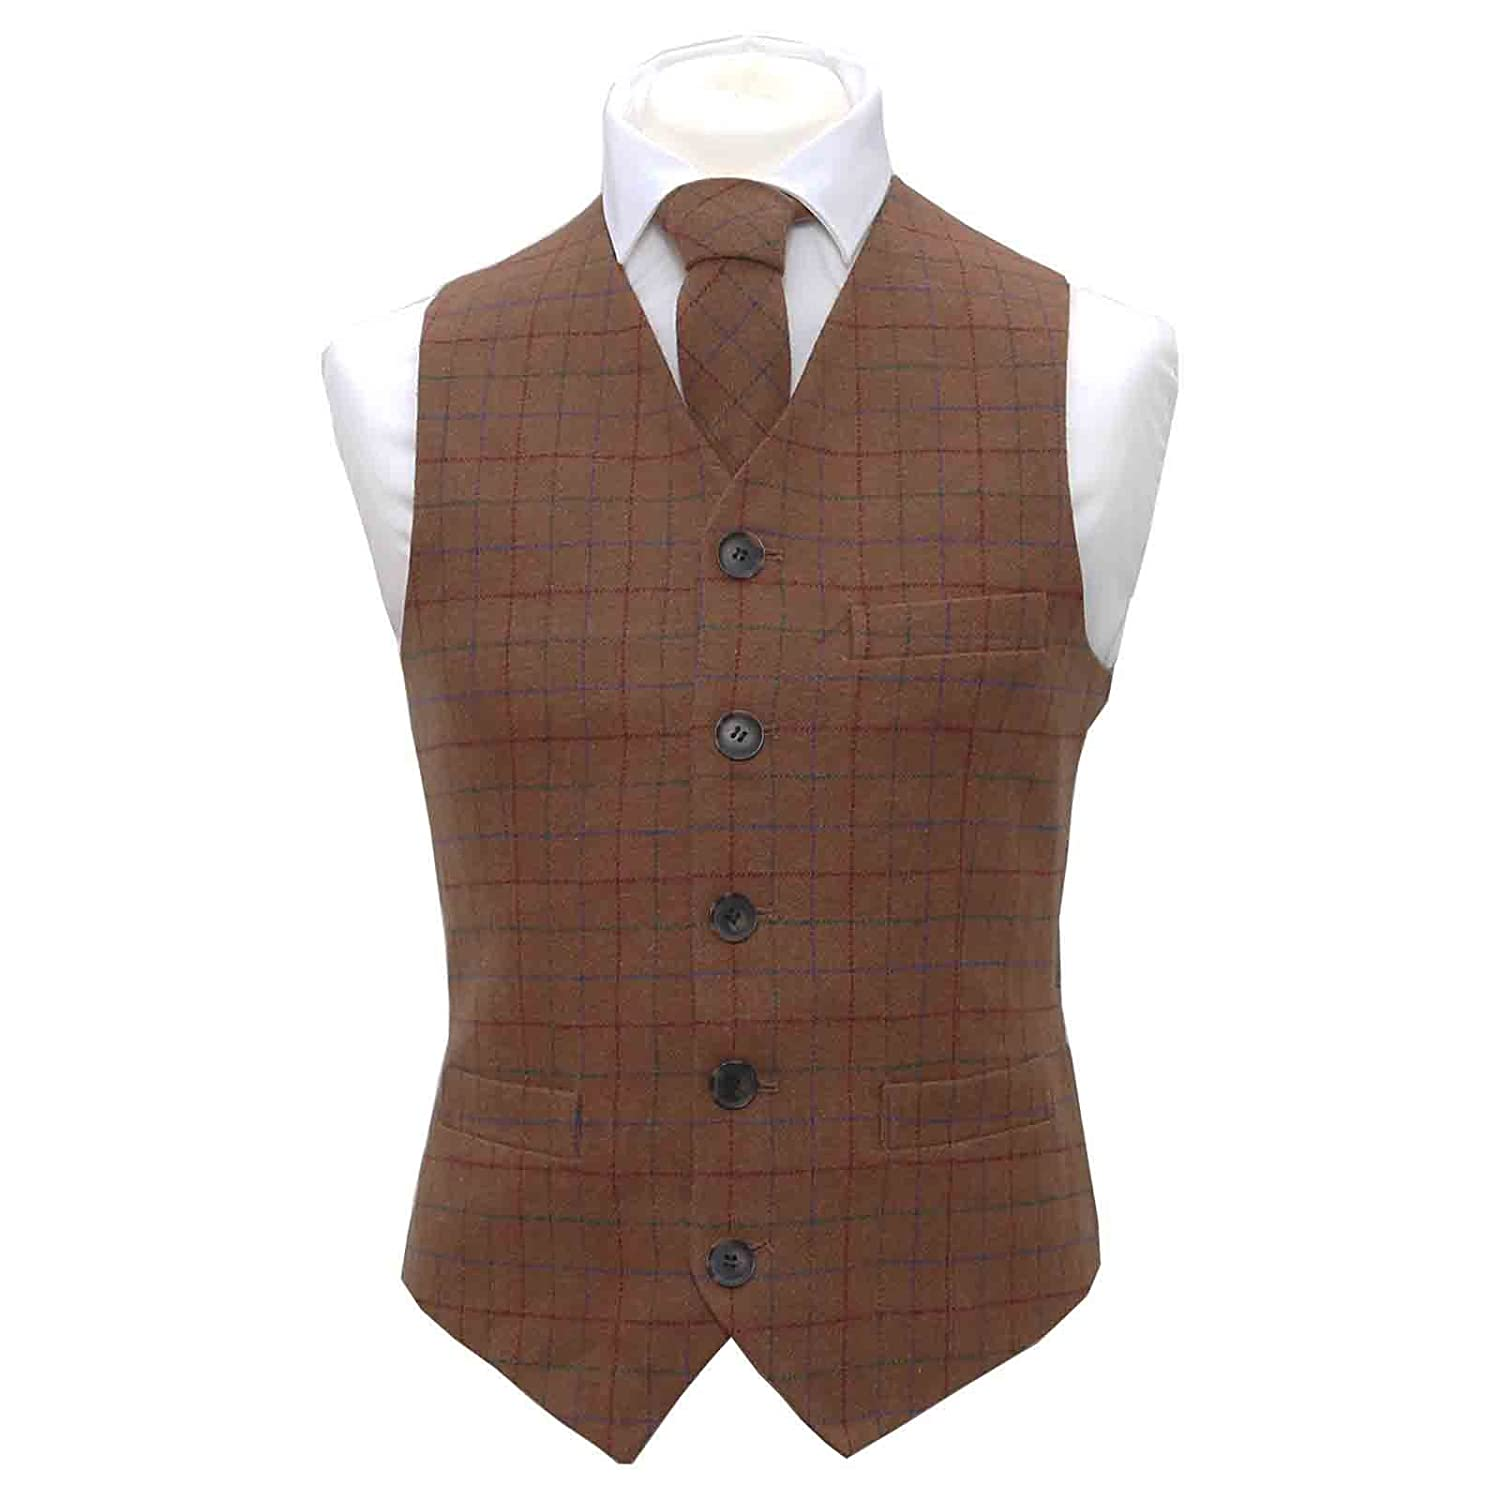 ec250398e9dc Heritage Check Rustic Brown Waistcoat & Matching Bow Tie, Tie & Pocket  Square: Amazon.co.uk: Clothing